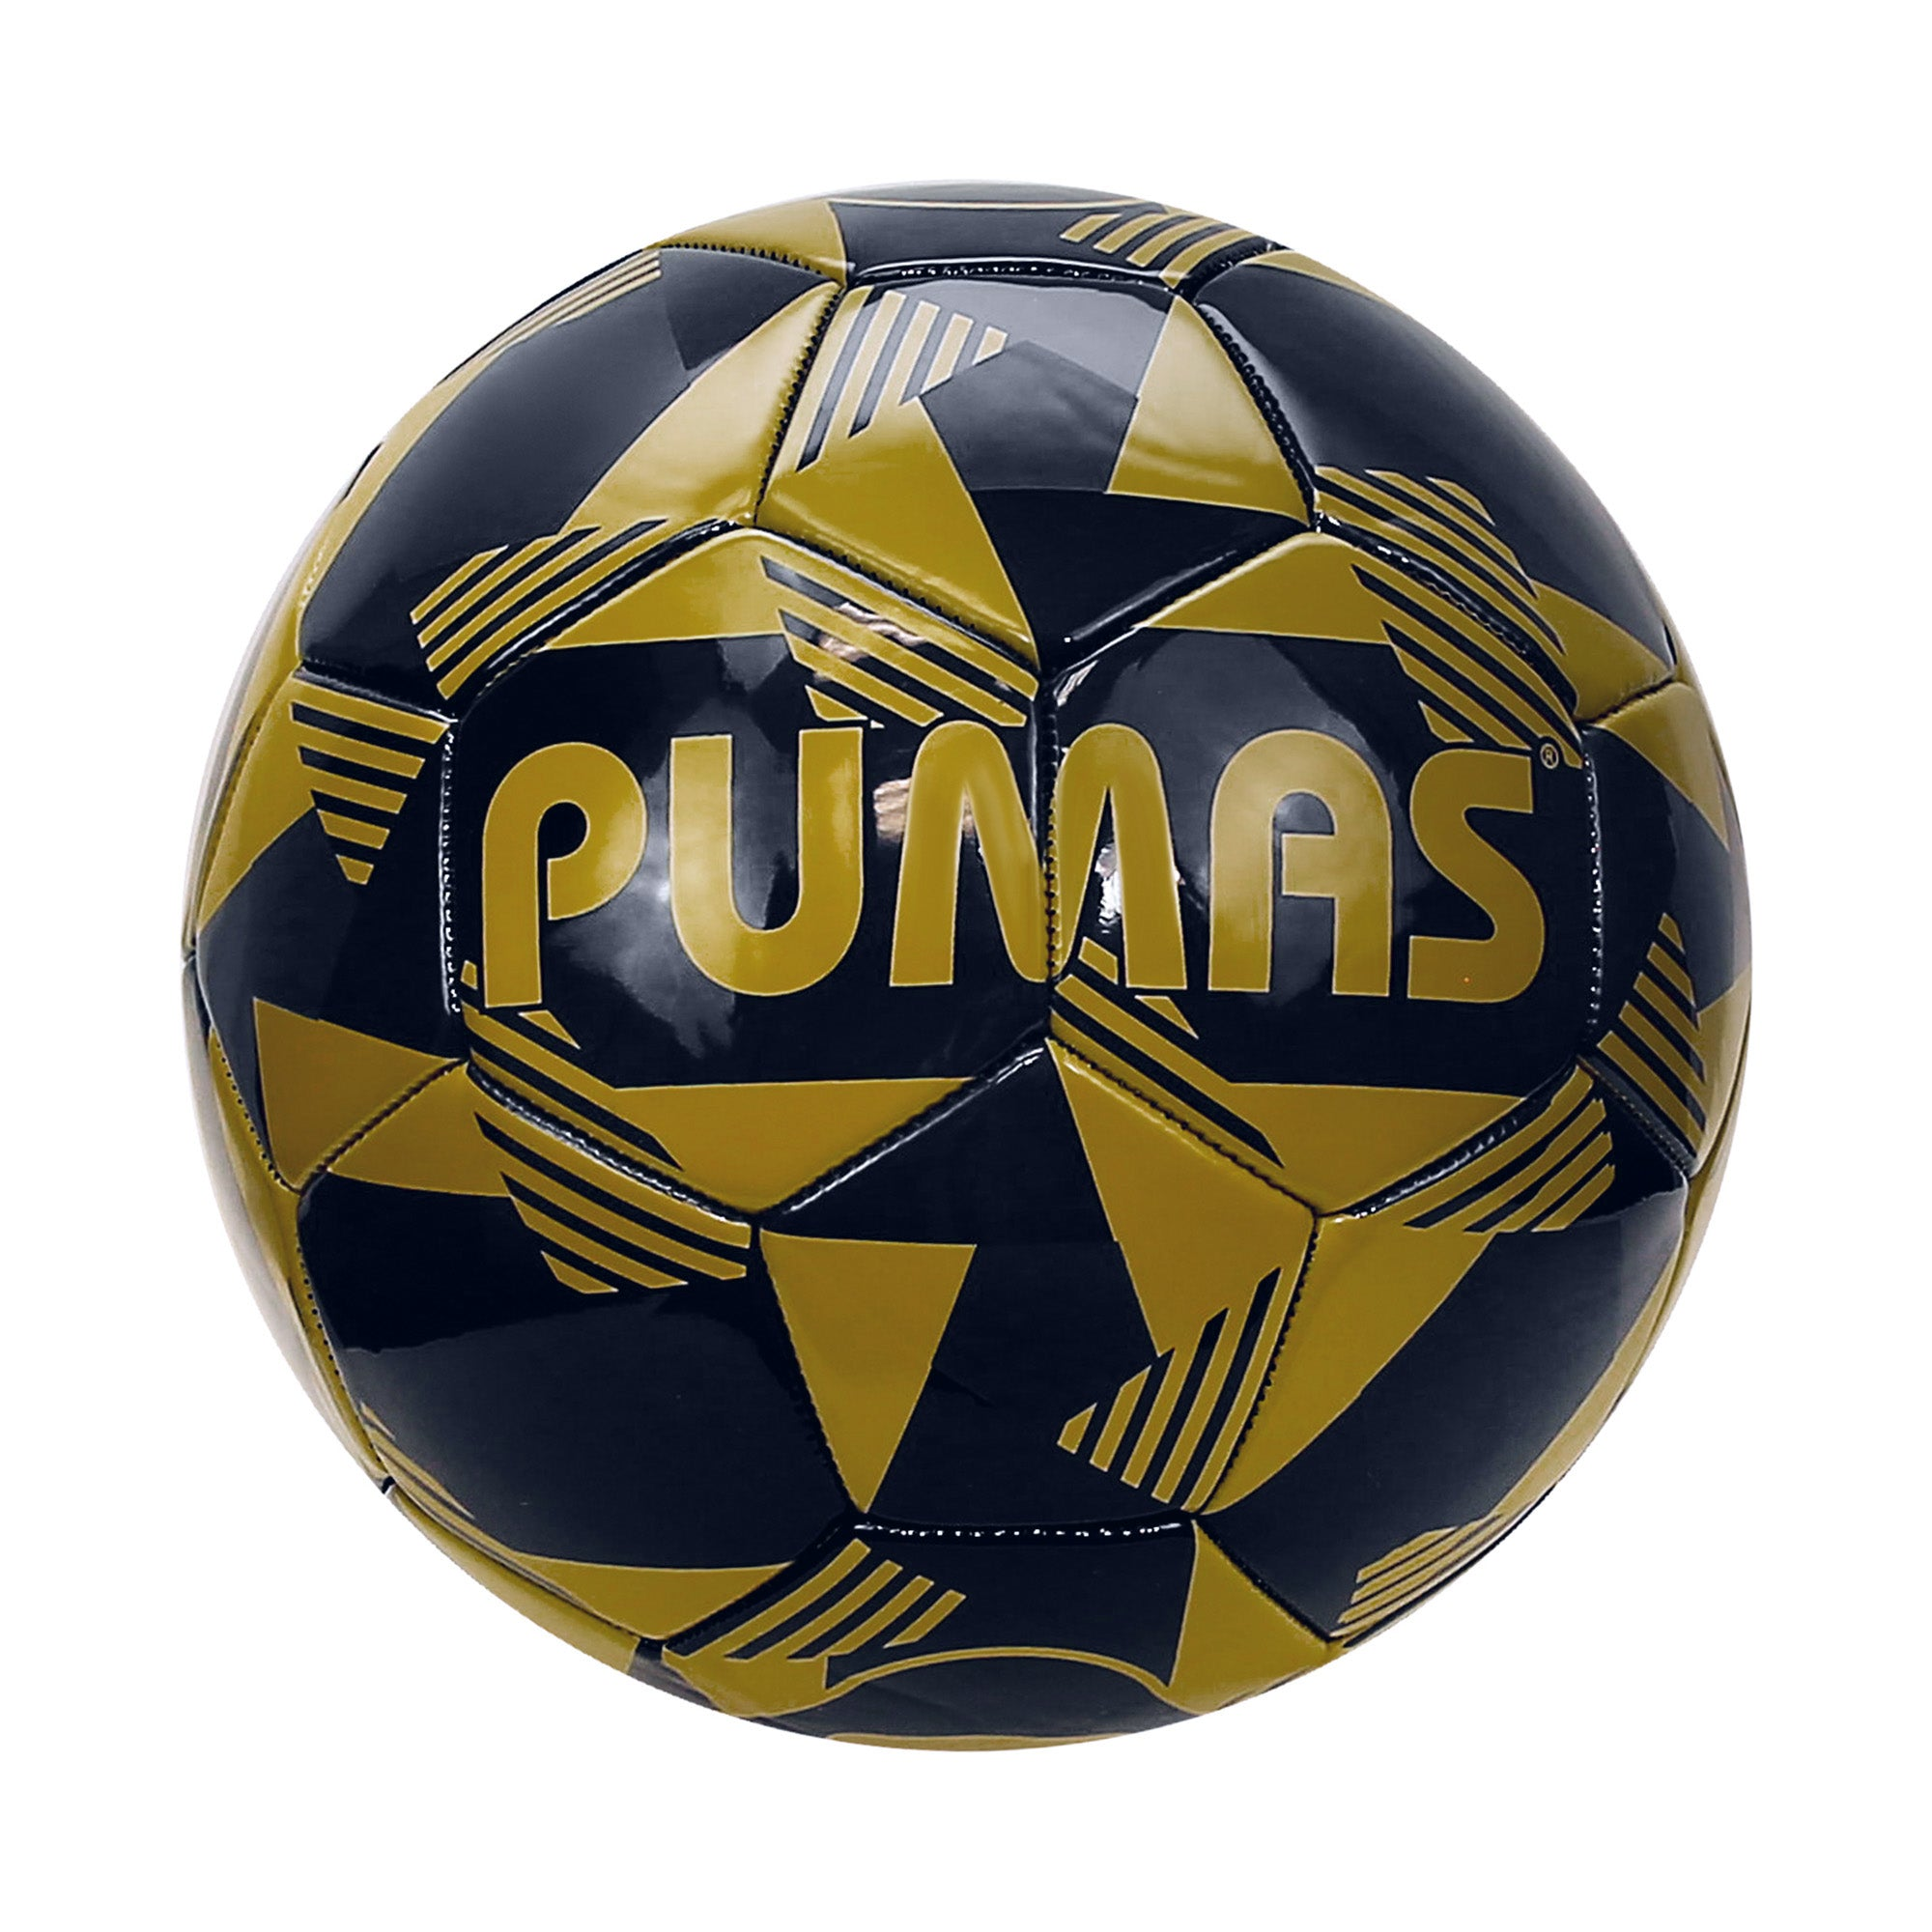 PUMAS UNAM Prism Size 5 Soccer Ball by Icon Sports